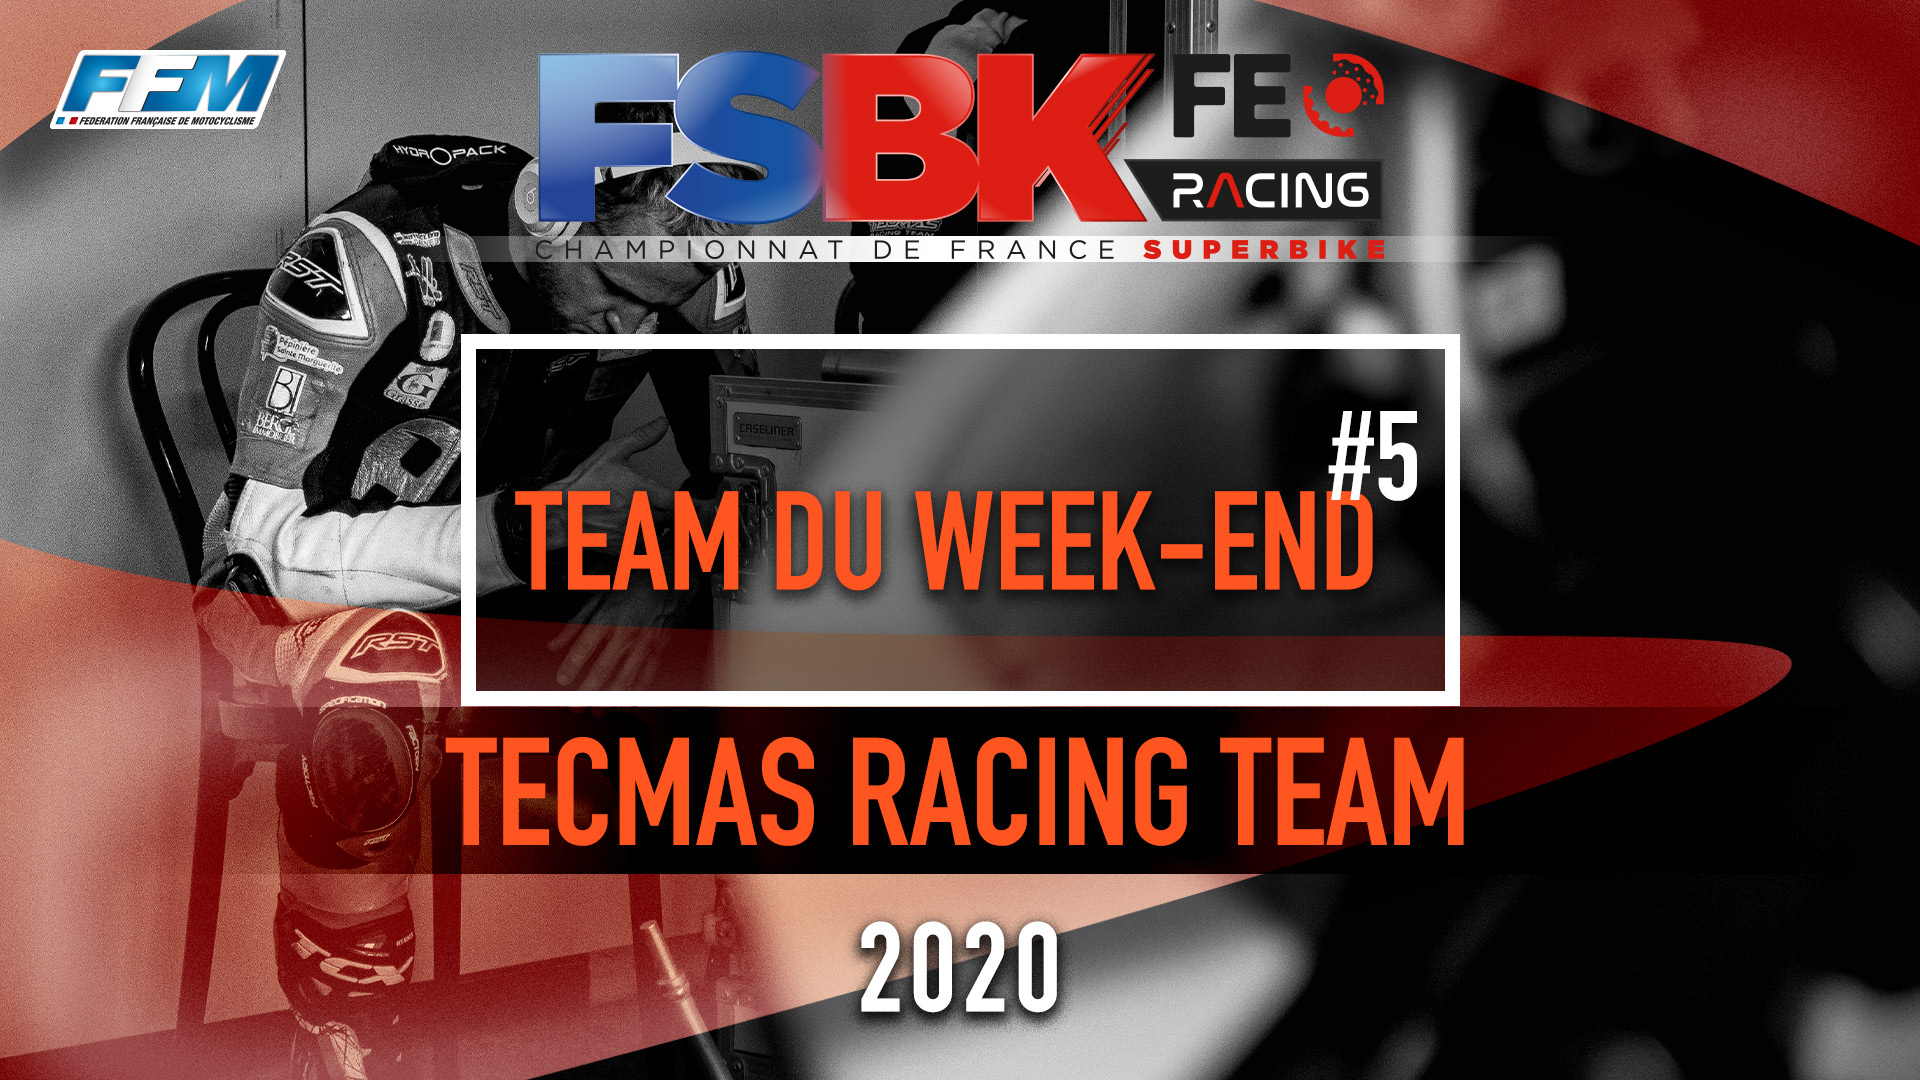 // LE TEAM DU WEEKEND – TECMAS RACING TEAM //